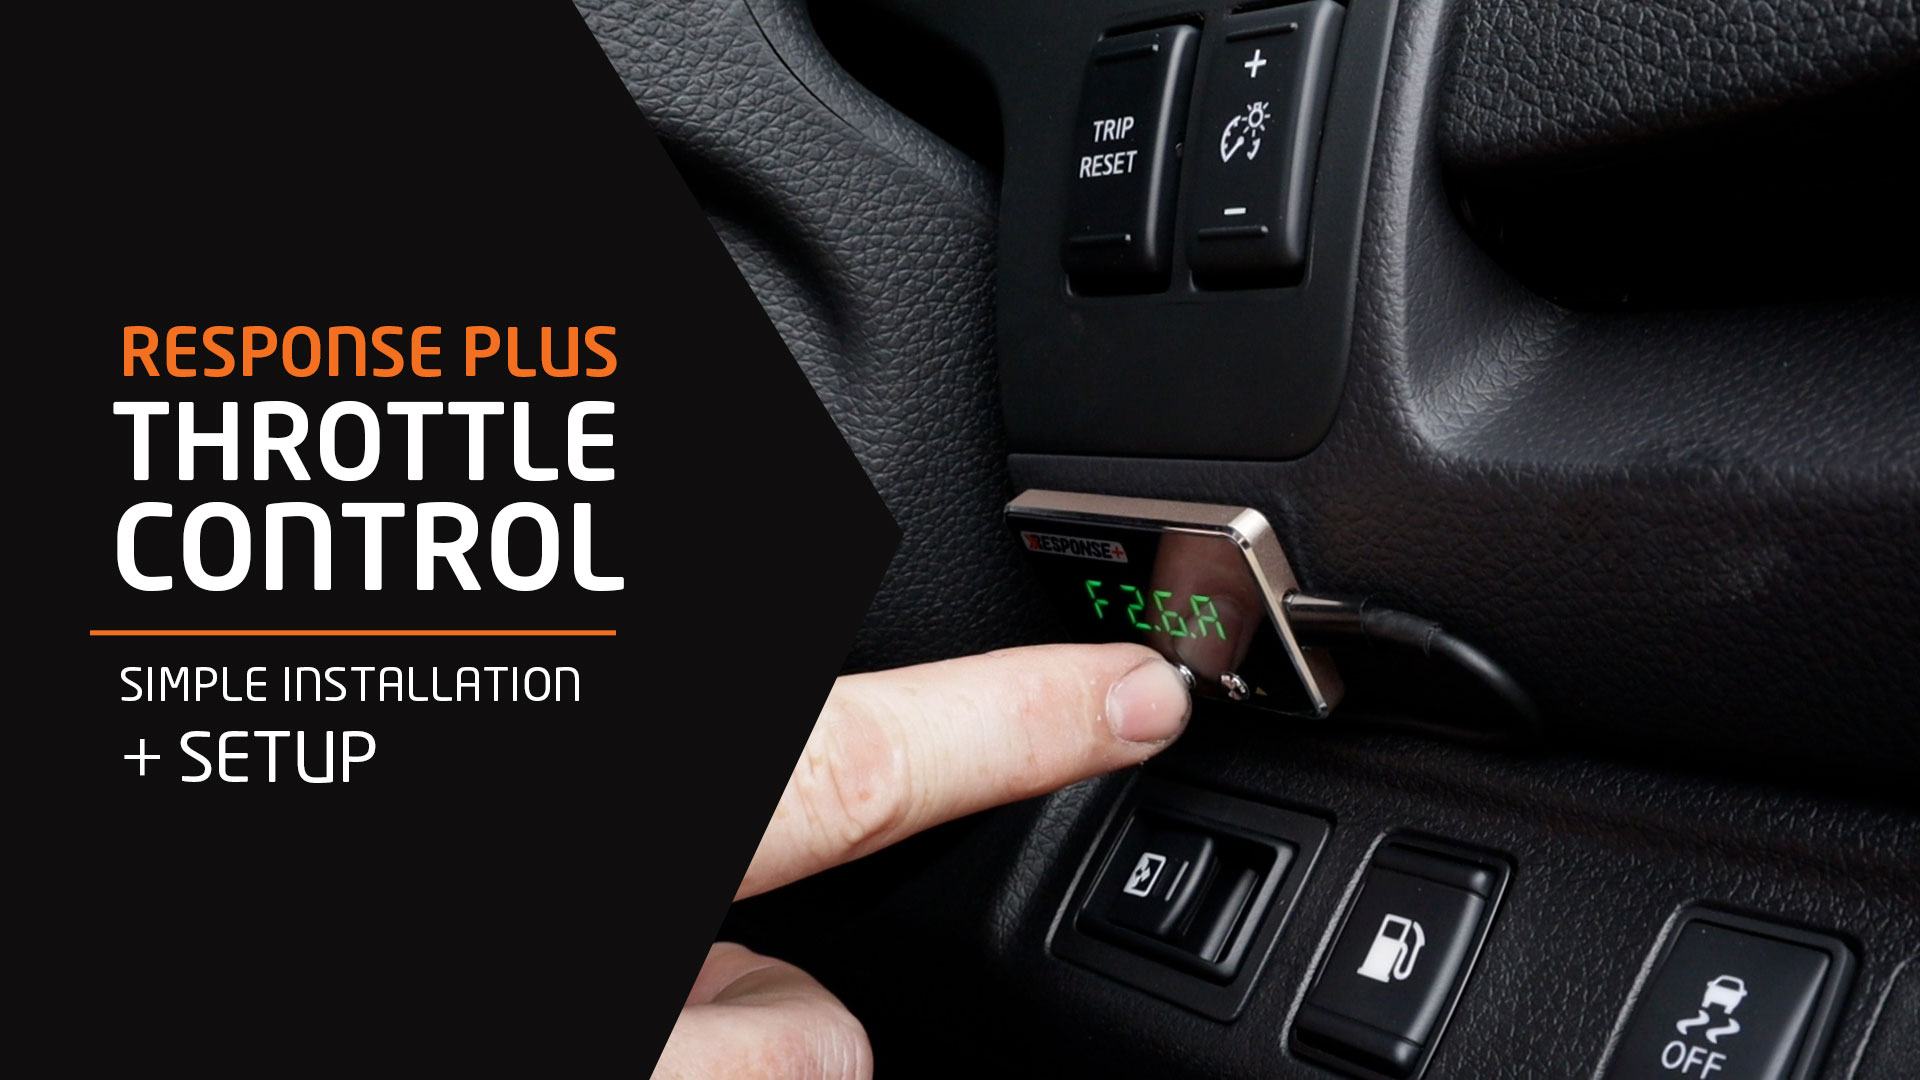 Throttle Control: How to Install Thumbnail Image